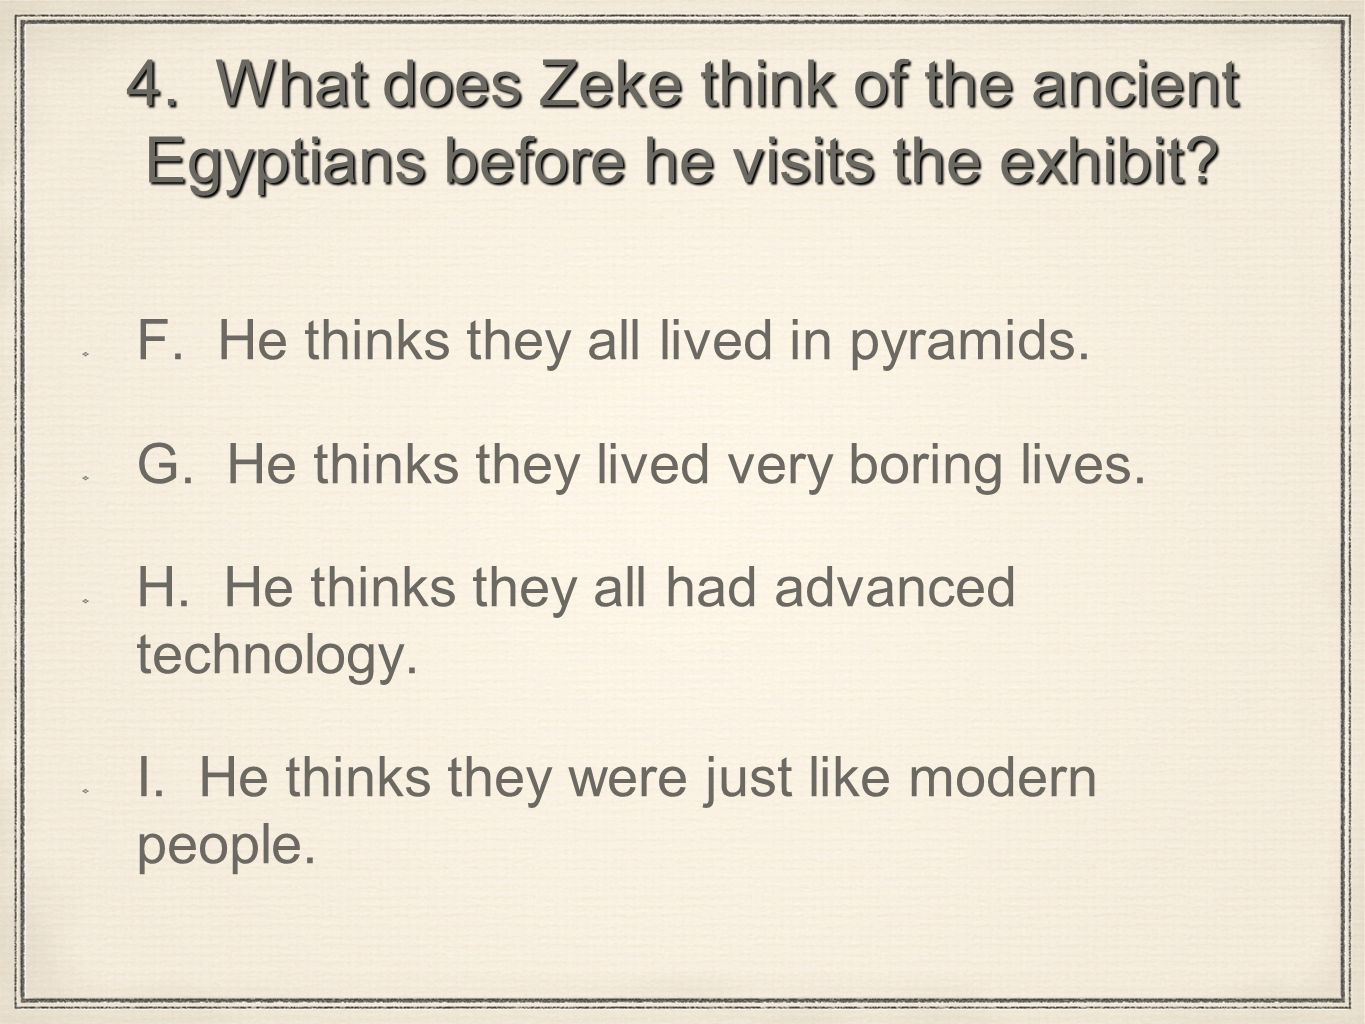 4. What does Zeke think of the ancient Egyptians before he visits the exhibit